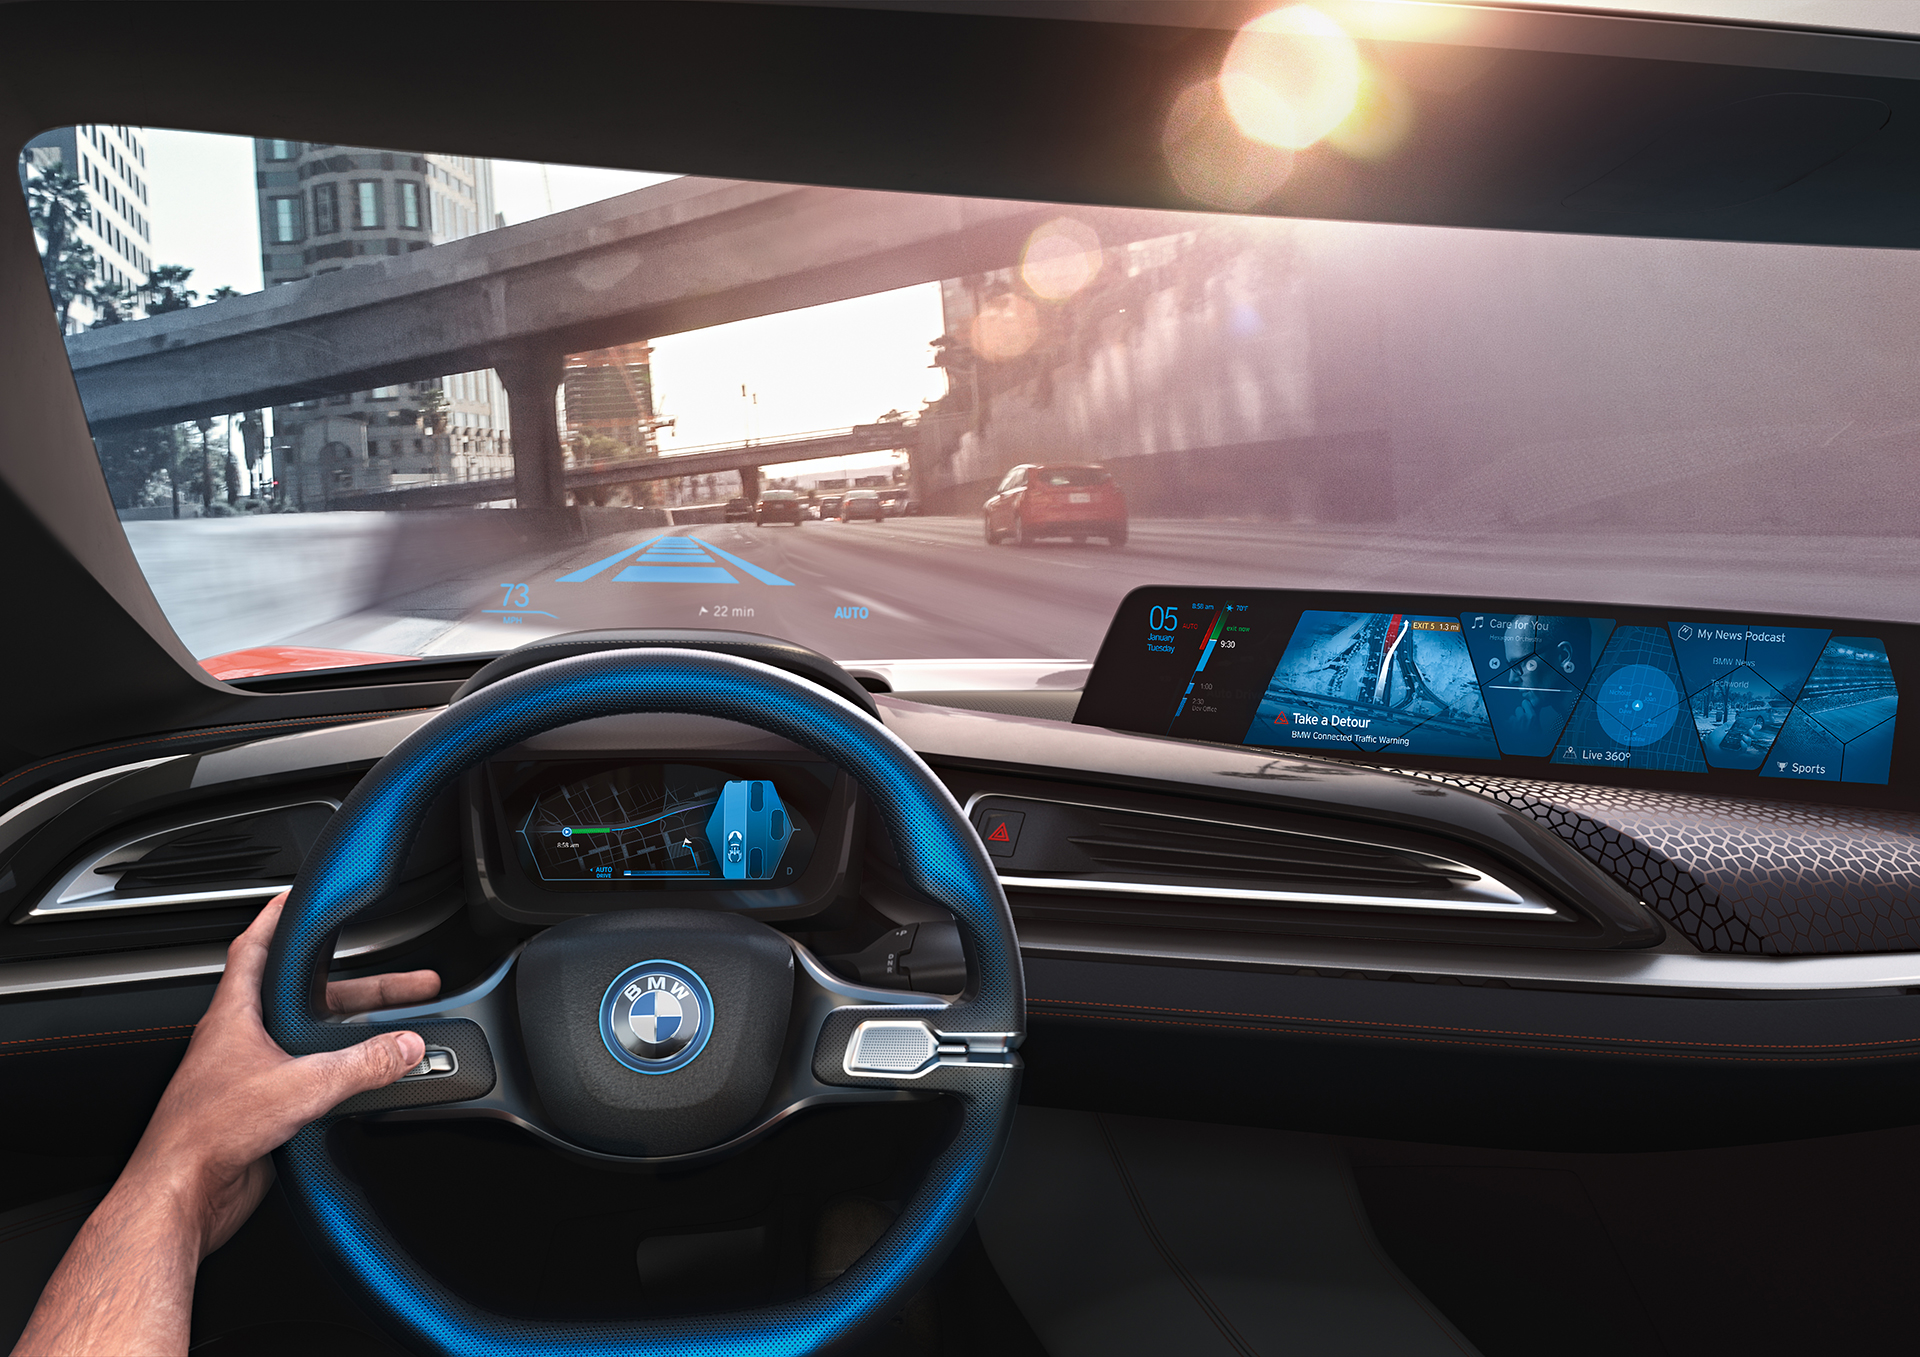 BMW i Vision Future Interaction – Concept Car - CES 2016 - dashboard vision